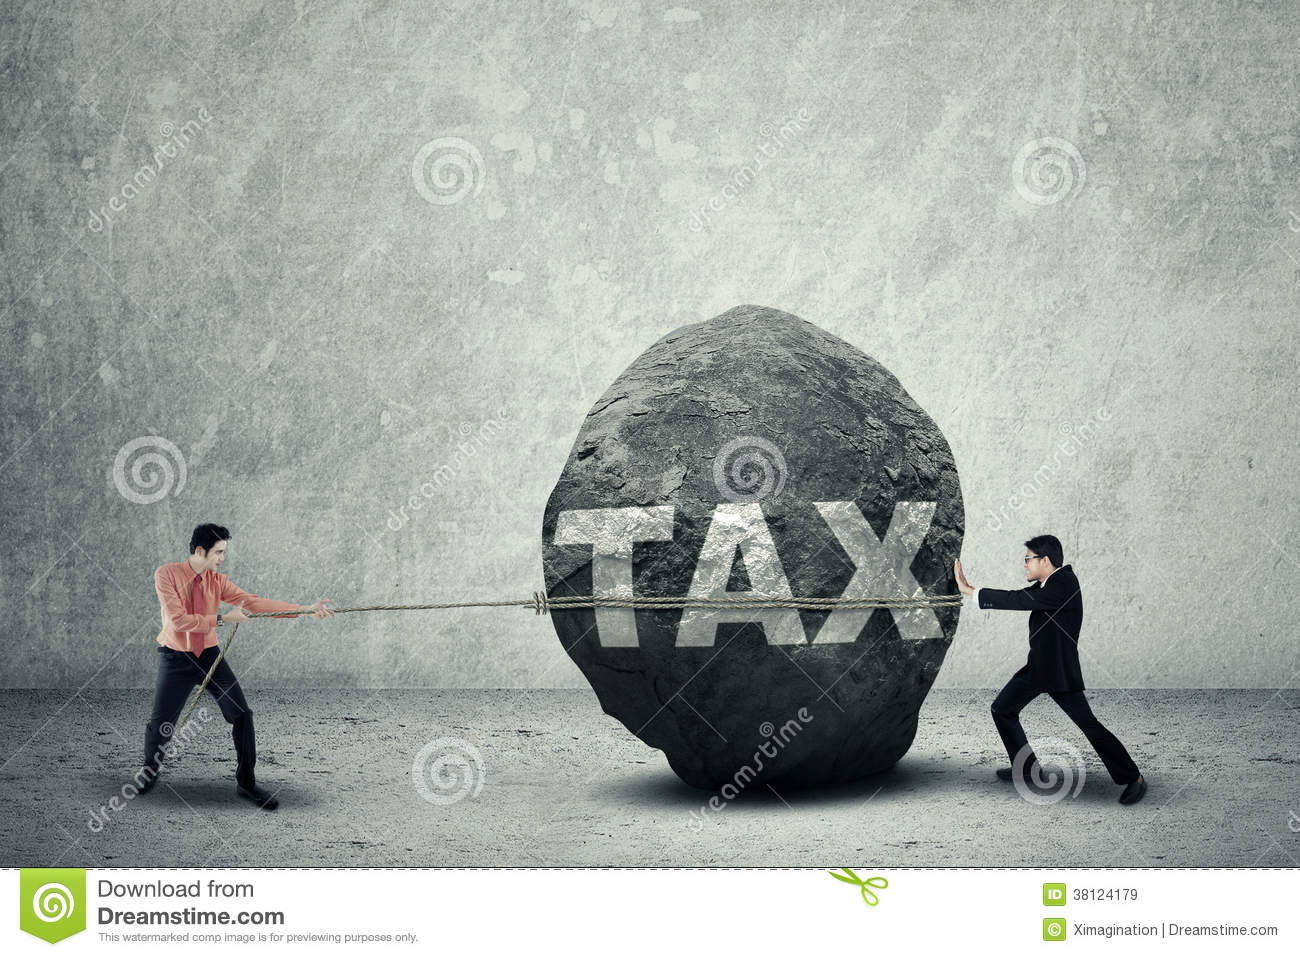 Young Sisyphus Tries To Move World >> Big Tax As Business Obstacle Stock Image Image Of Concept Outdoor